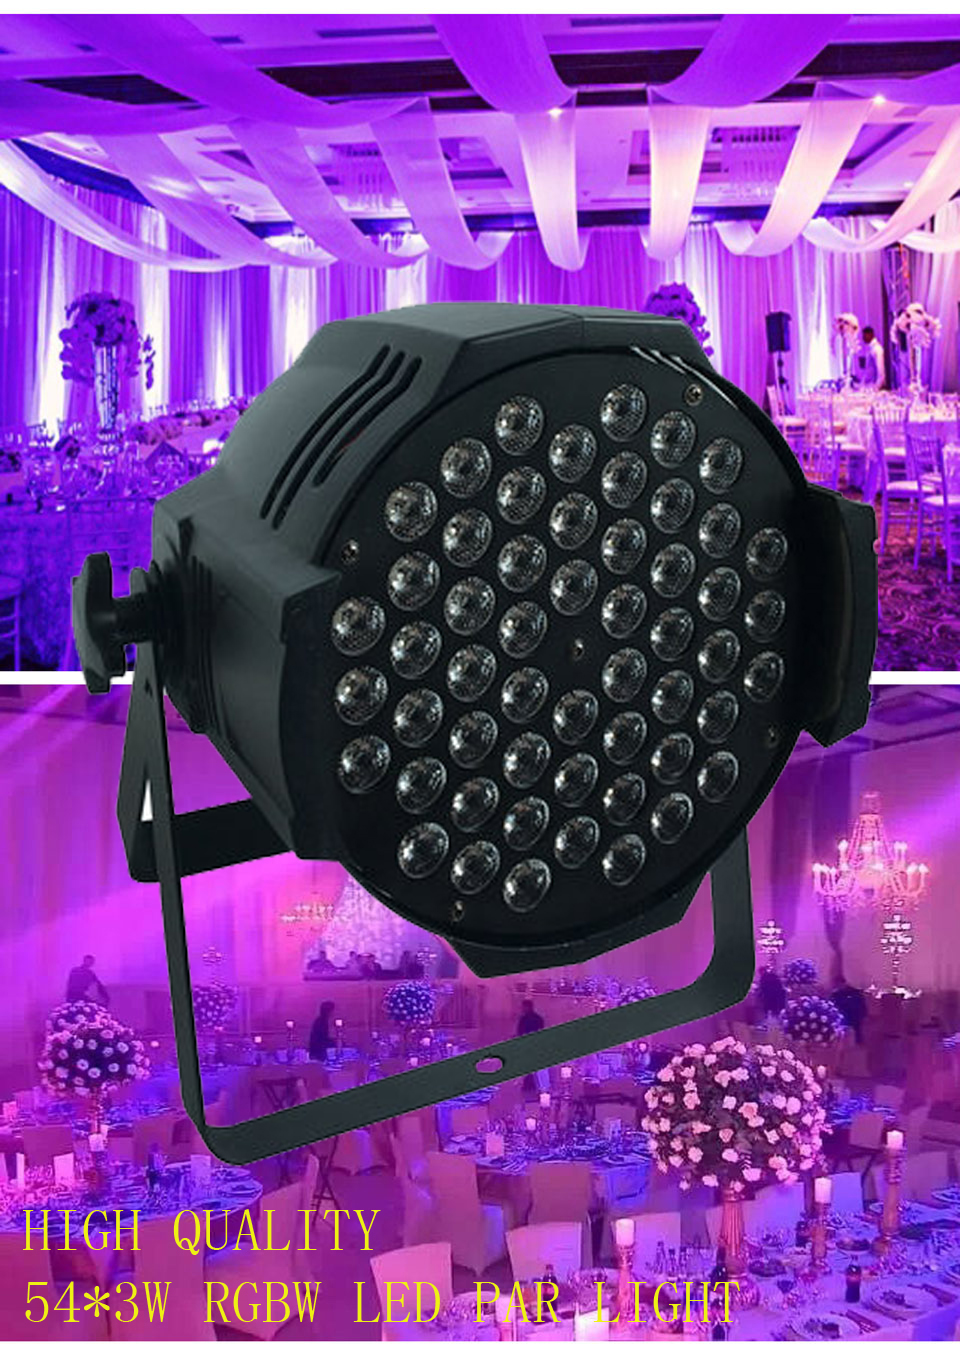 4X LOT High Quality CE Approved RGBW 54*3W LED Par Light Stage Par64 Light High Quality DMX LED LIGHT Aluminum LED Par Can 16x lot rasha free shipping ce approved rgbw 54 3w led par light stage par64 light for disco stage party